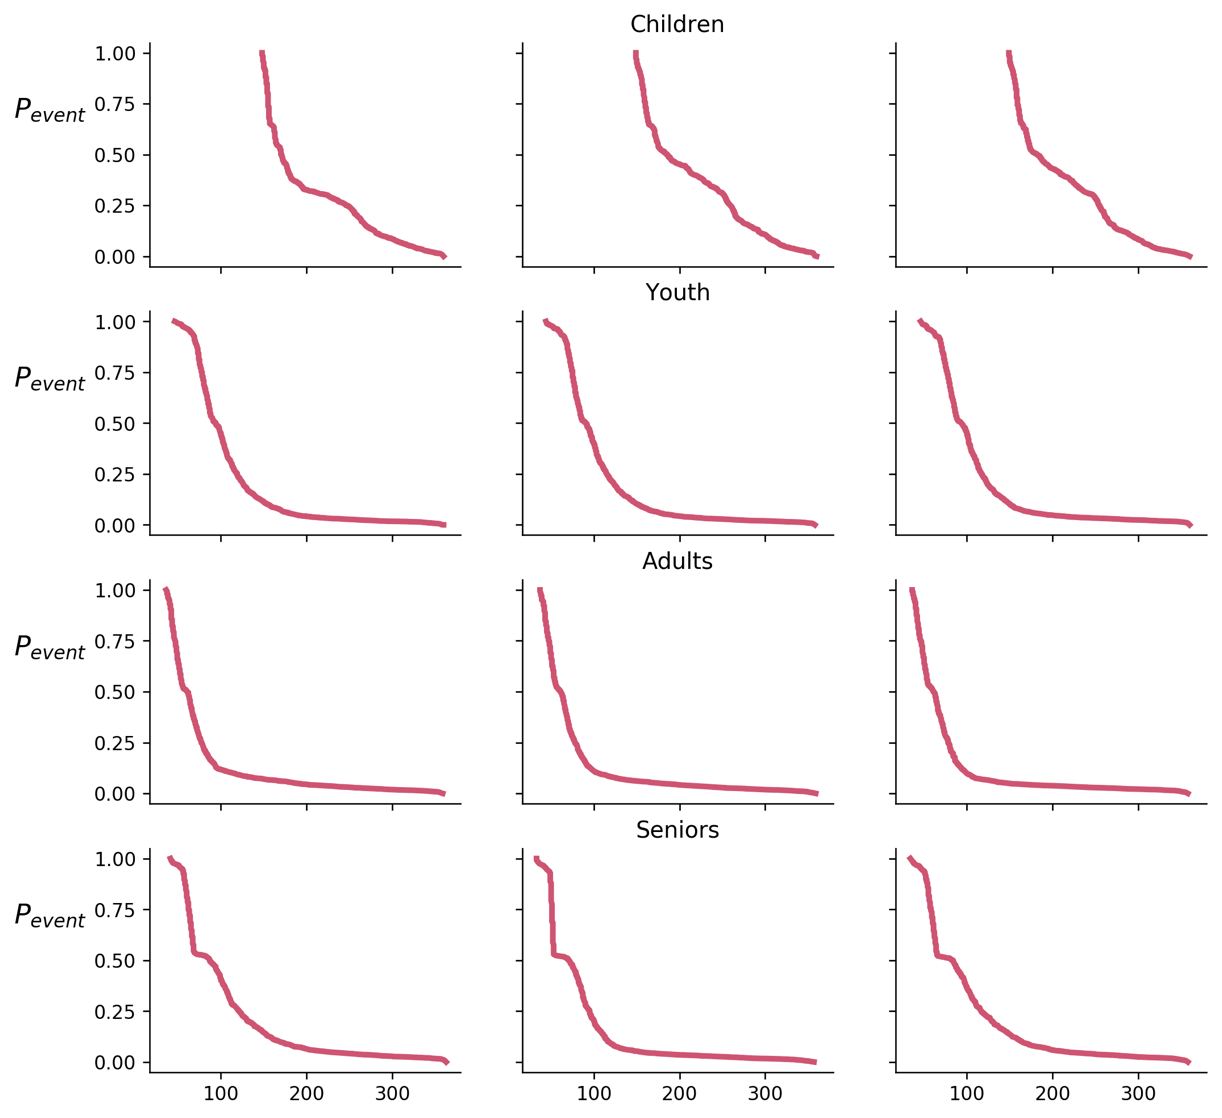 An improved version of the 3-by-4 grid of line charts